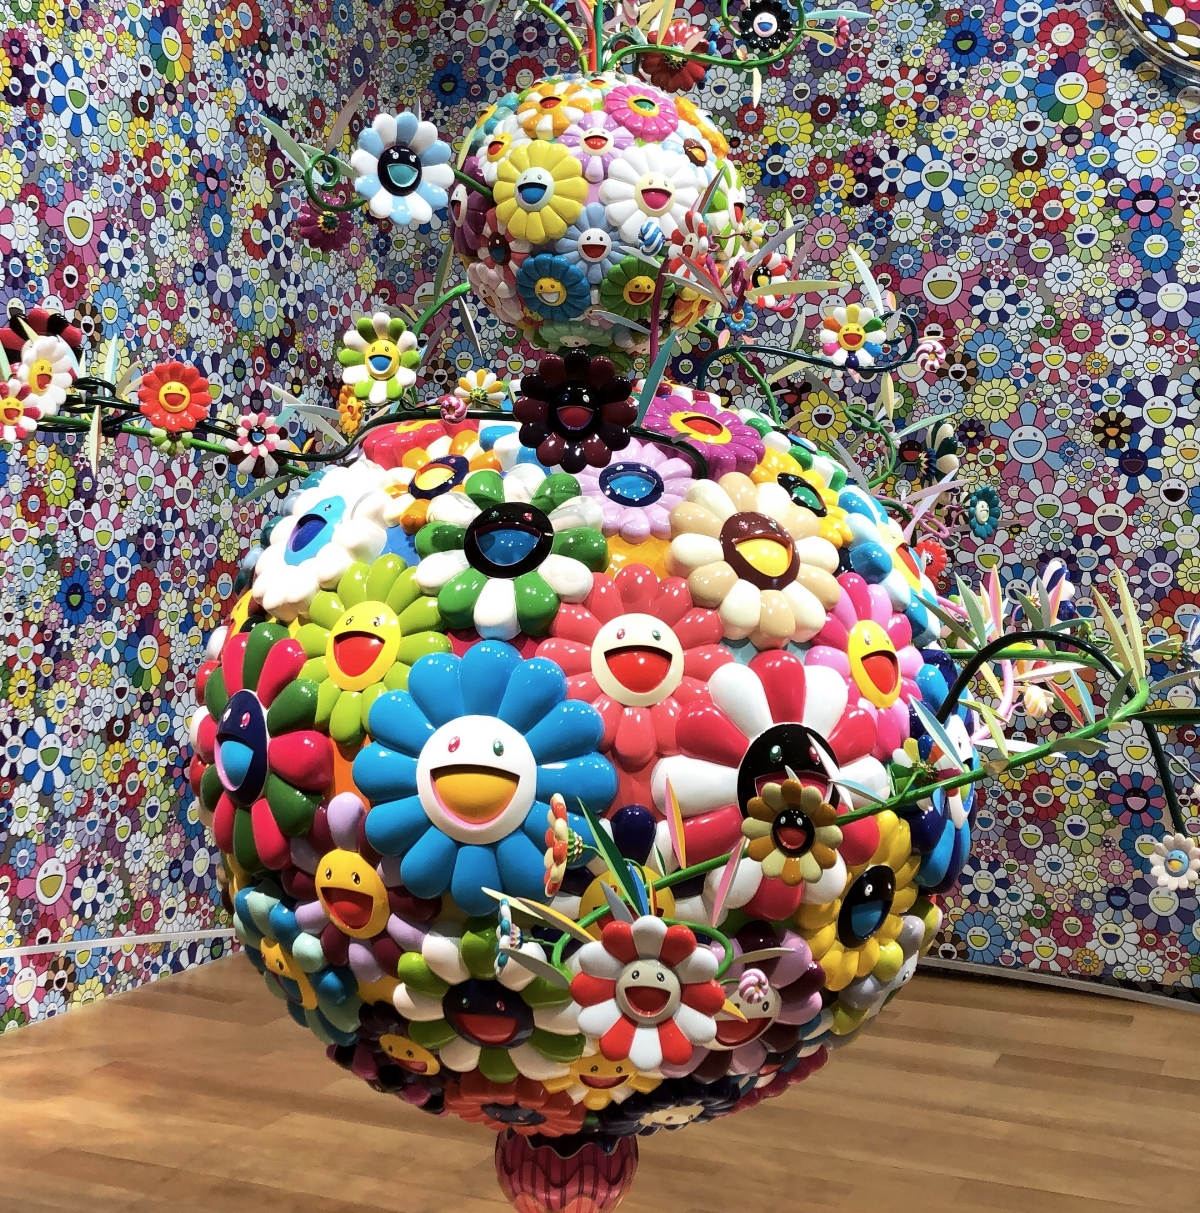 Takashi Murakami,  Flower Ball (Lots of Color),  installed at the Fort Worth Modern.